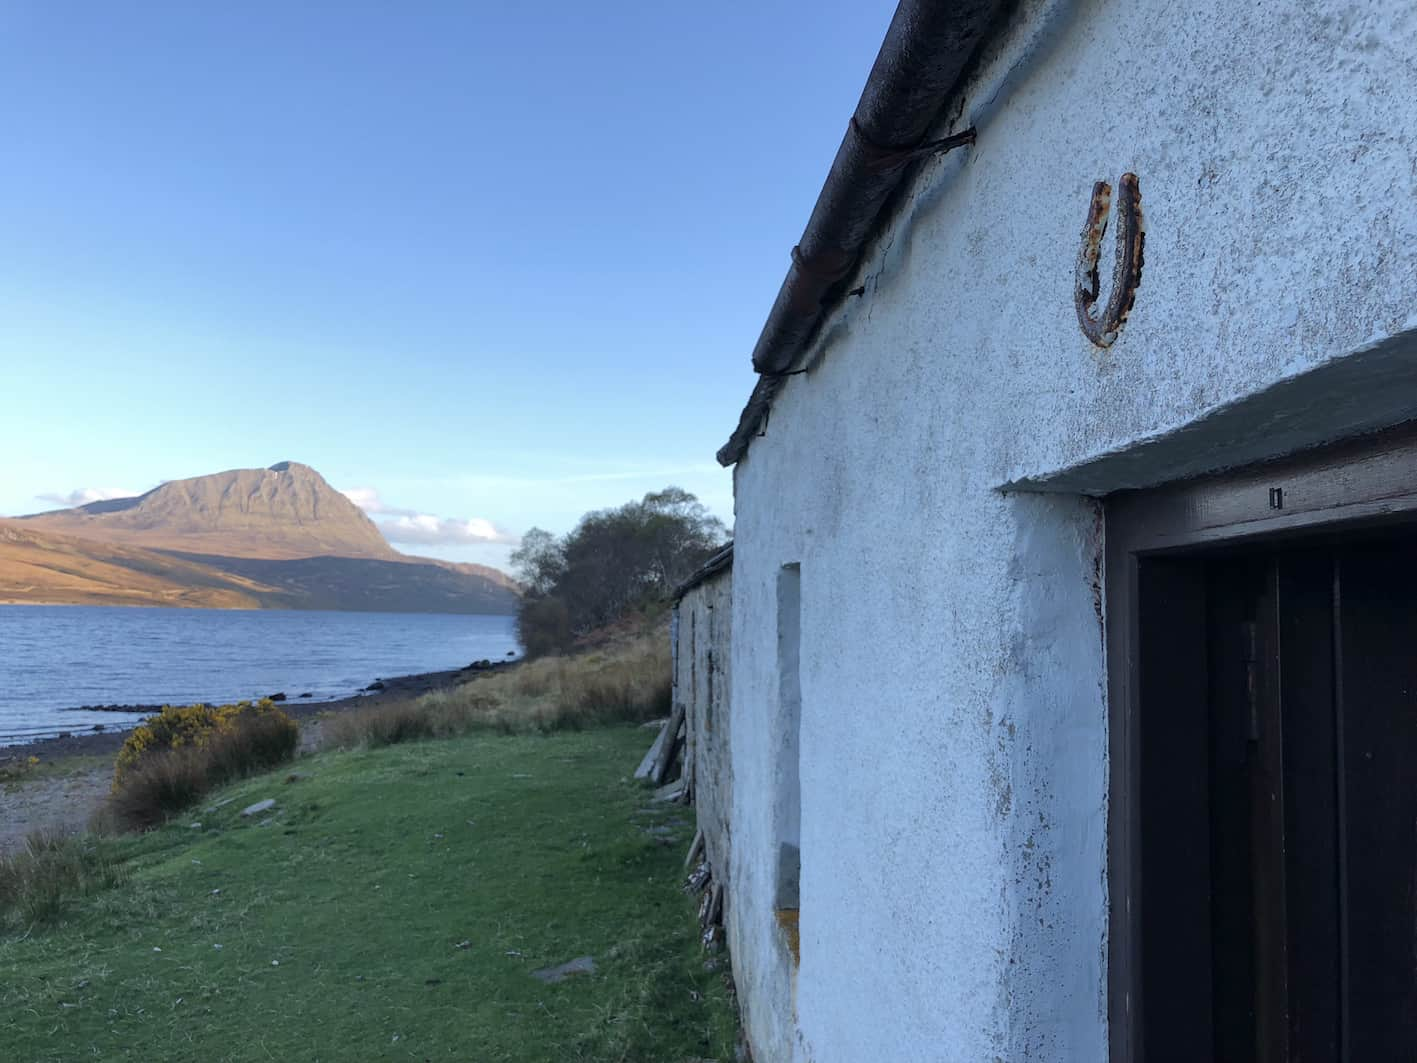 bothies are all over the highlands of Scotland